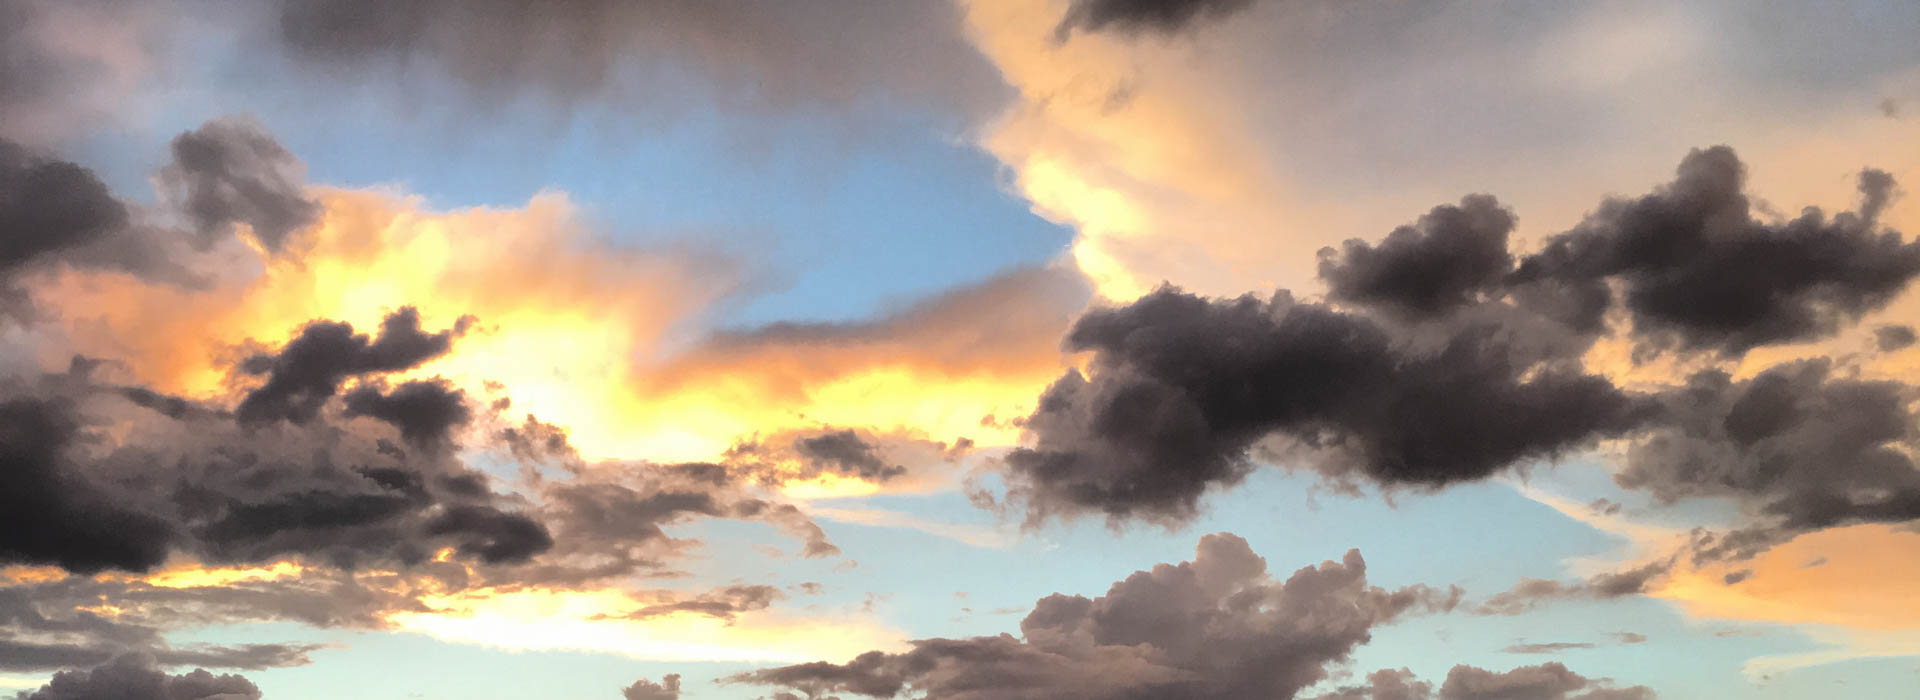 Monsoons bring stunning sunrises and sunsets in Prescott AZ